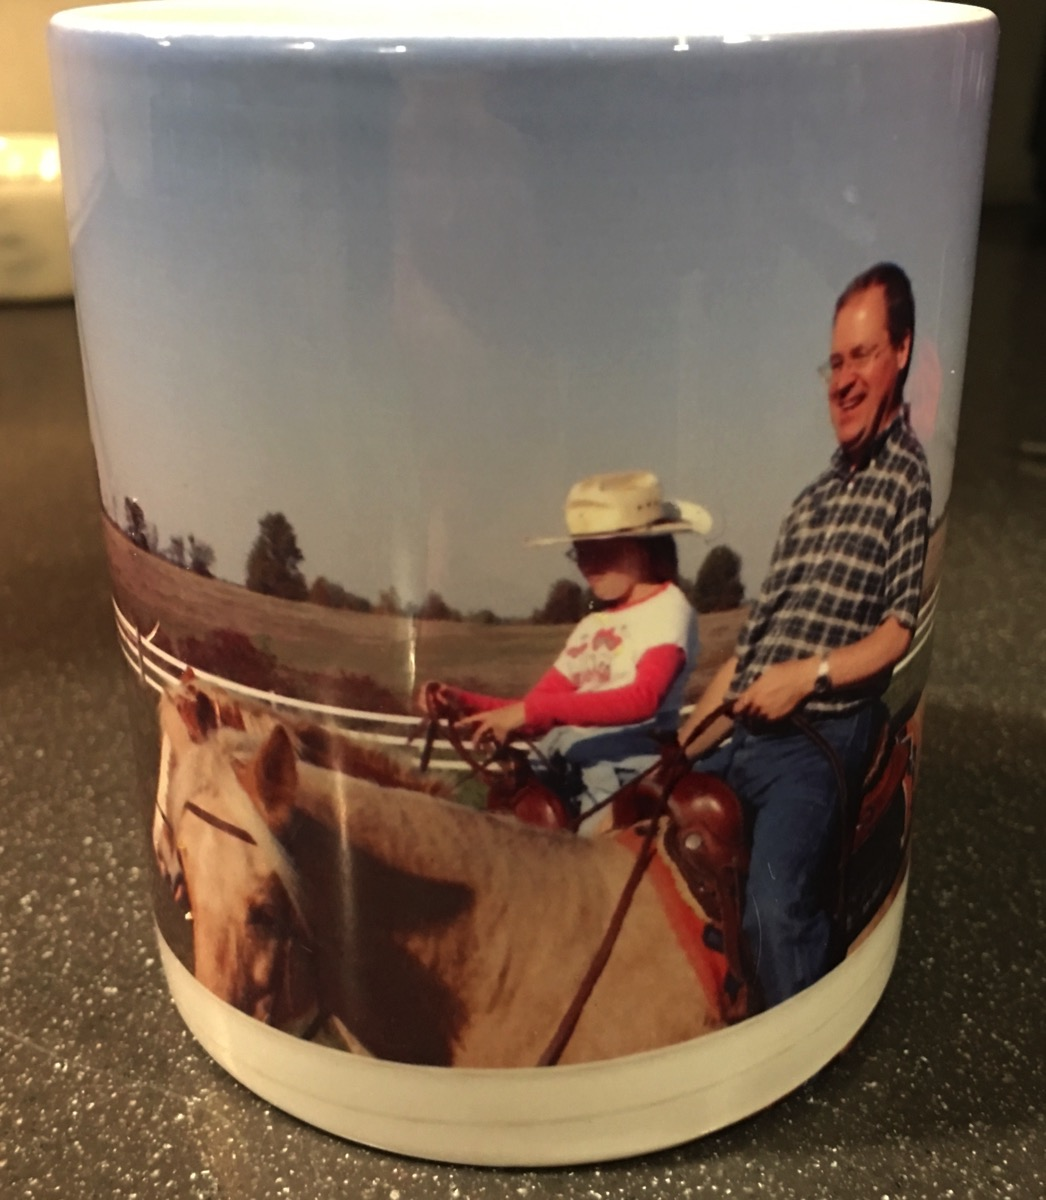 Governor on mug